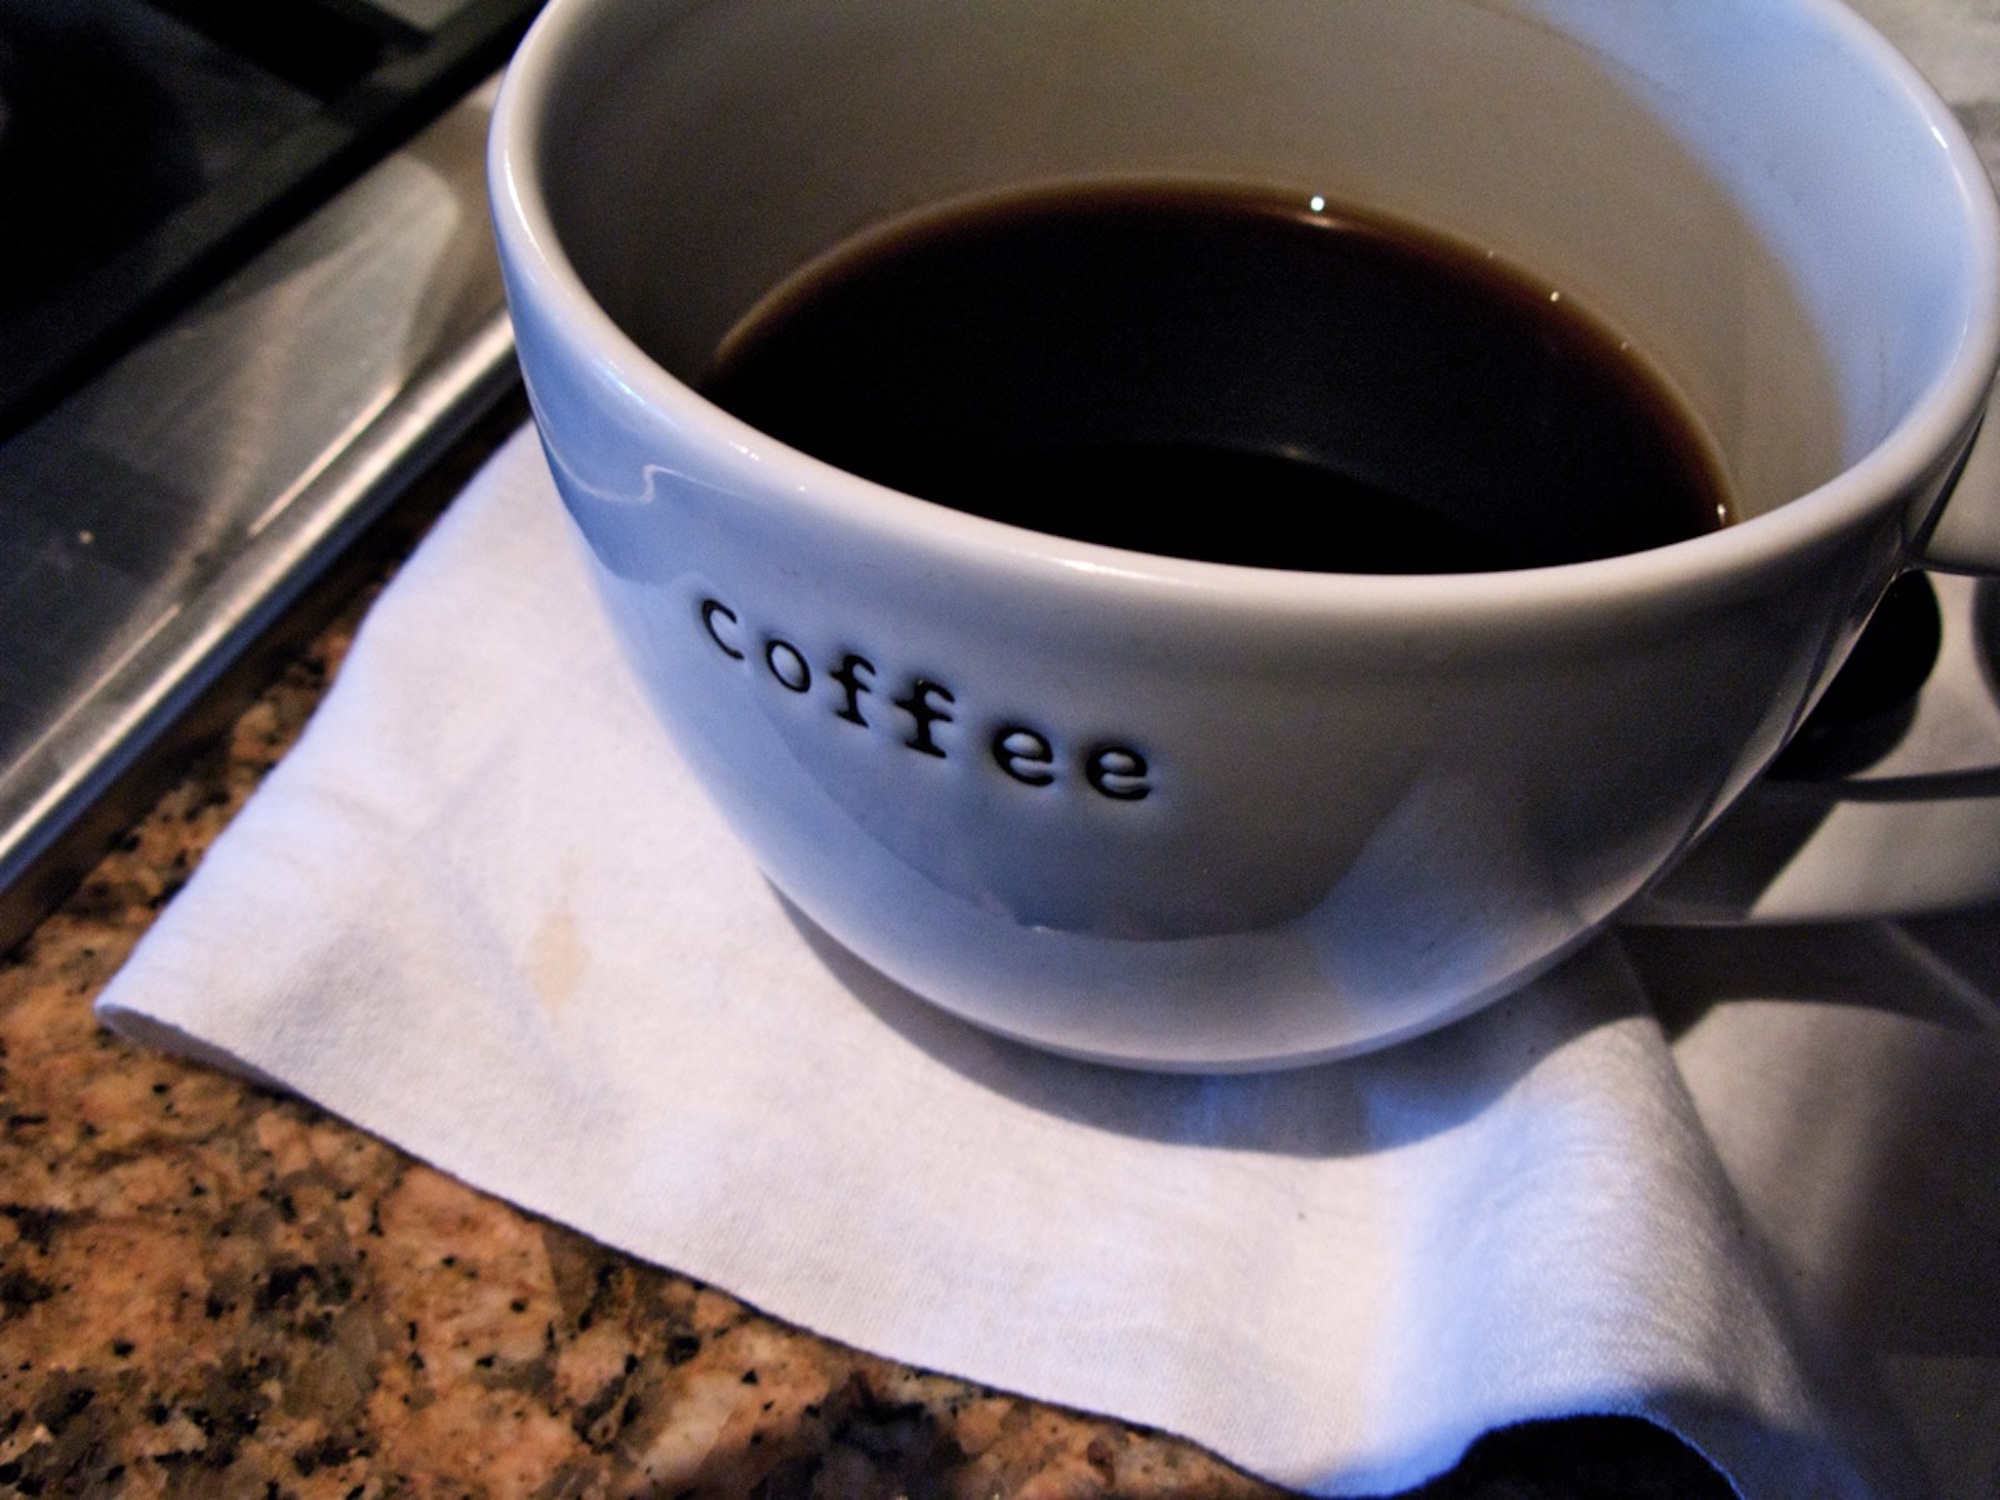 Coffee brewed in a Bodum Santos vacuum coffee maker. (Jennie Robinson Faber/Flickr)